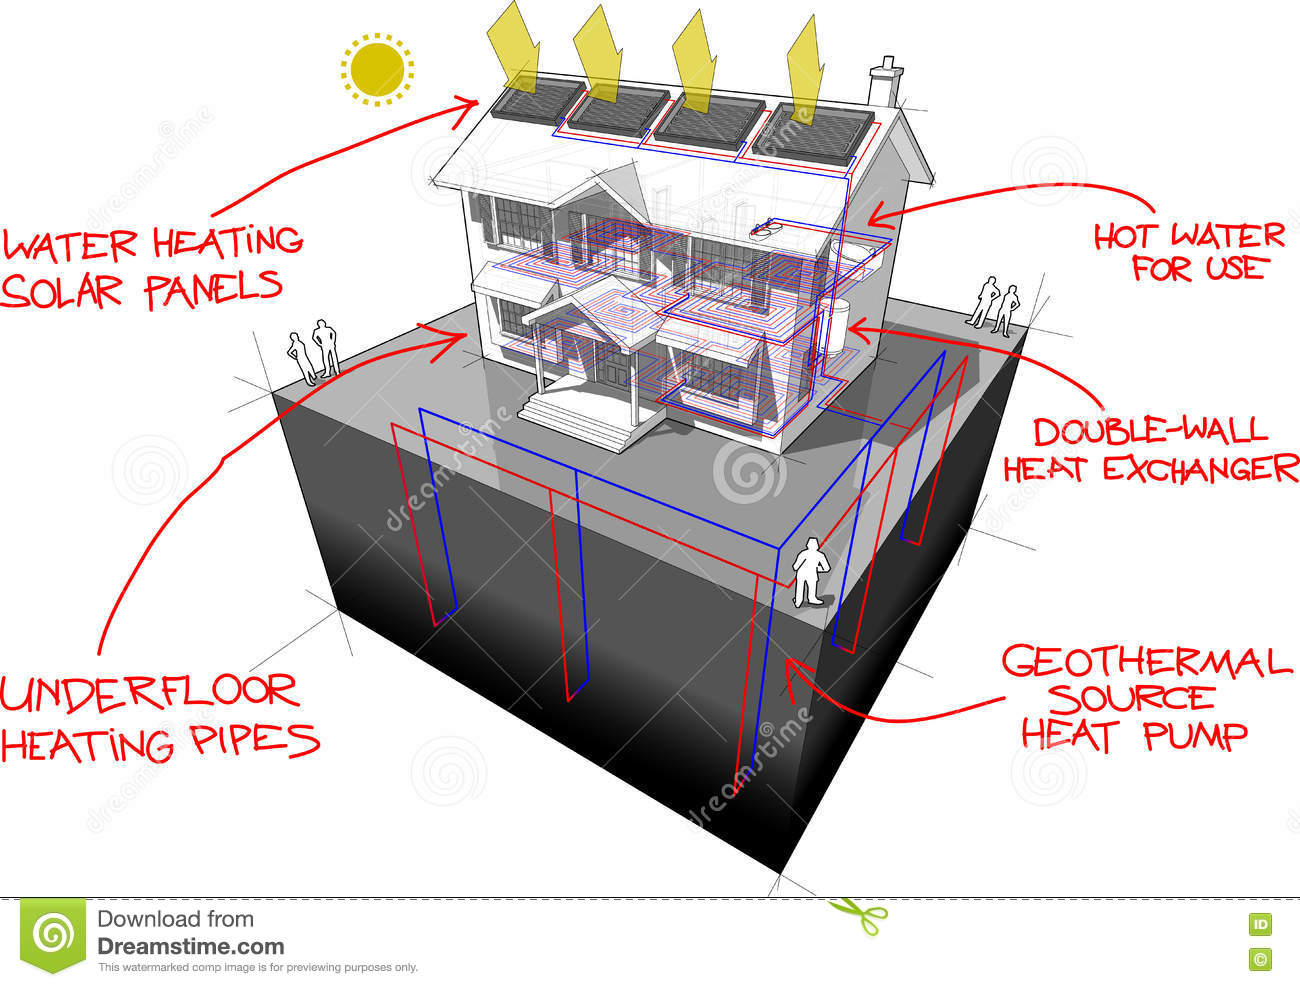 hight resolution of ground source heat pump diagram and solar panels diagram with hand drawn notes